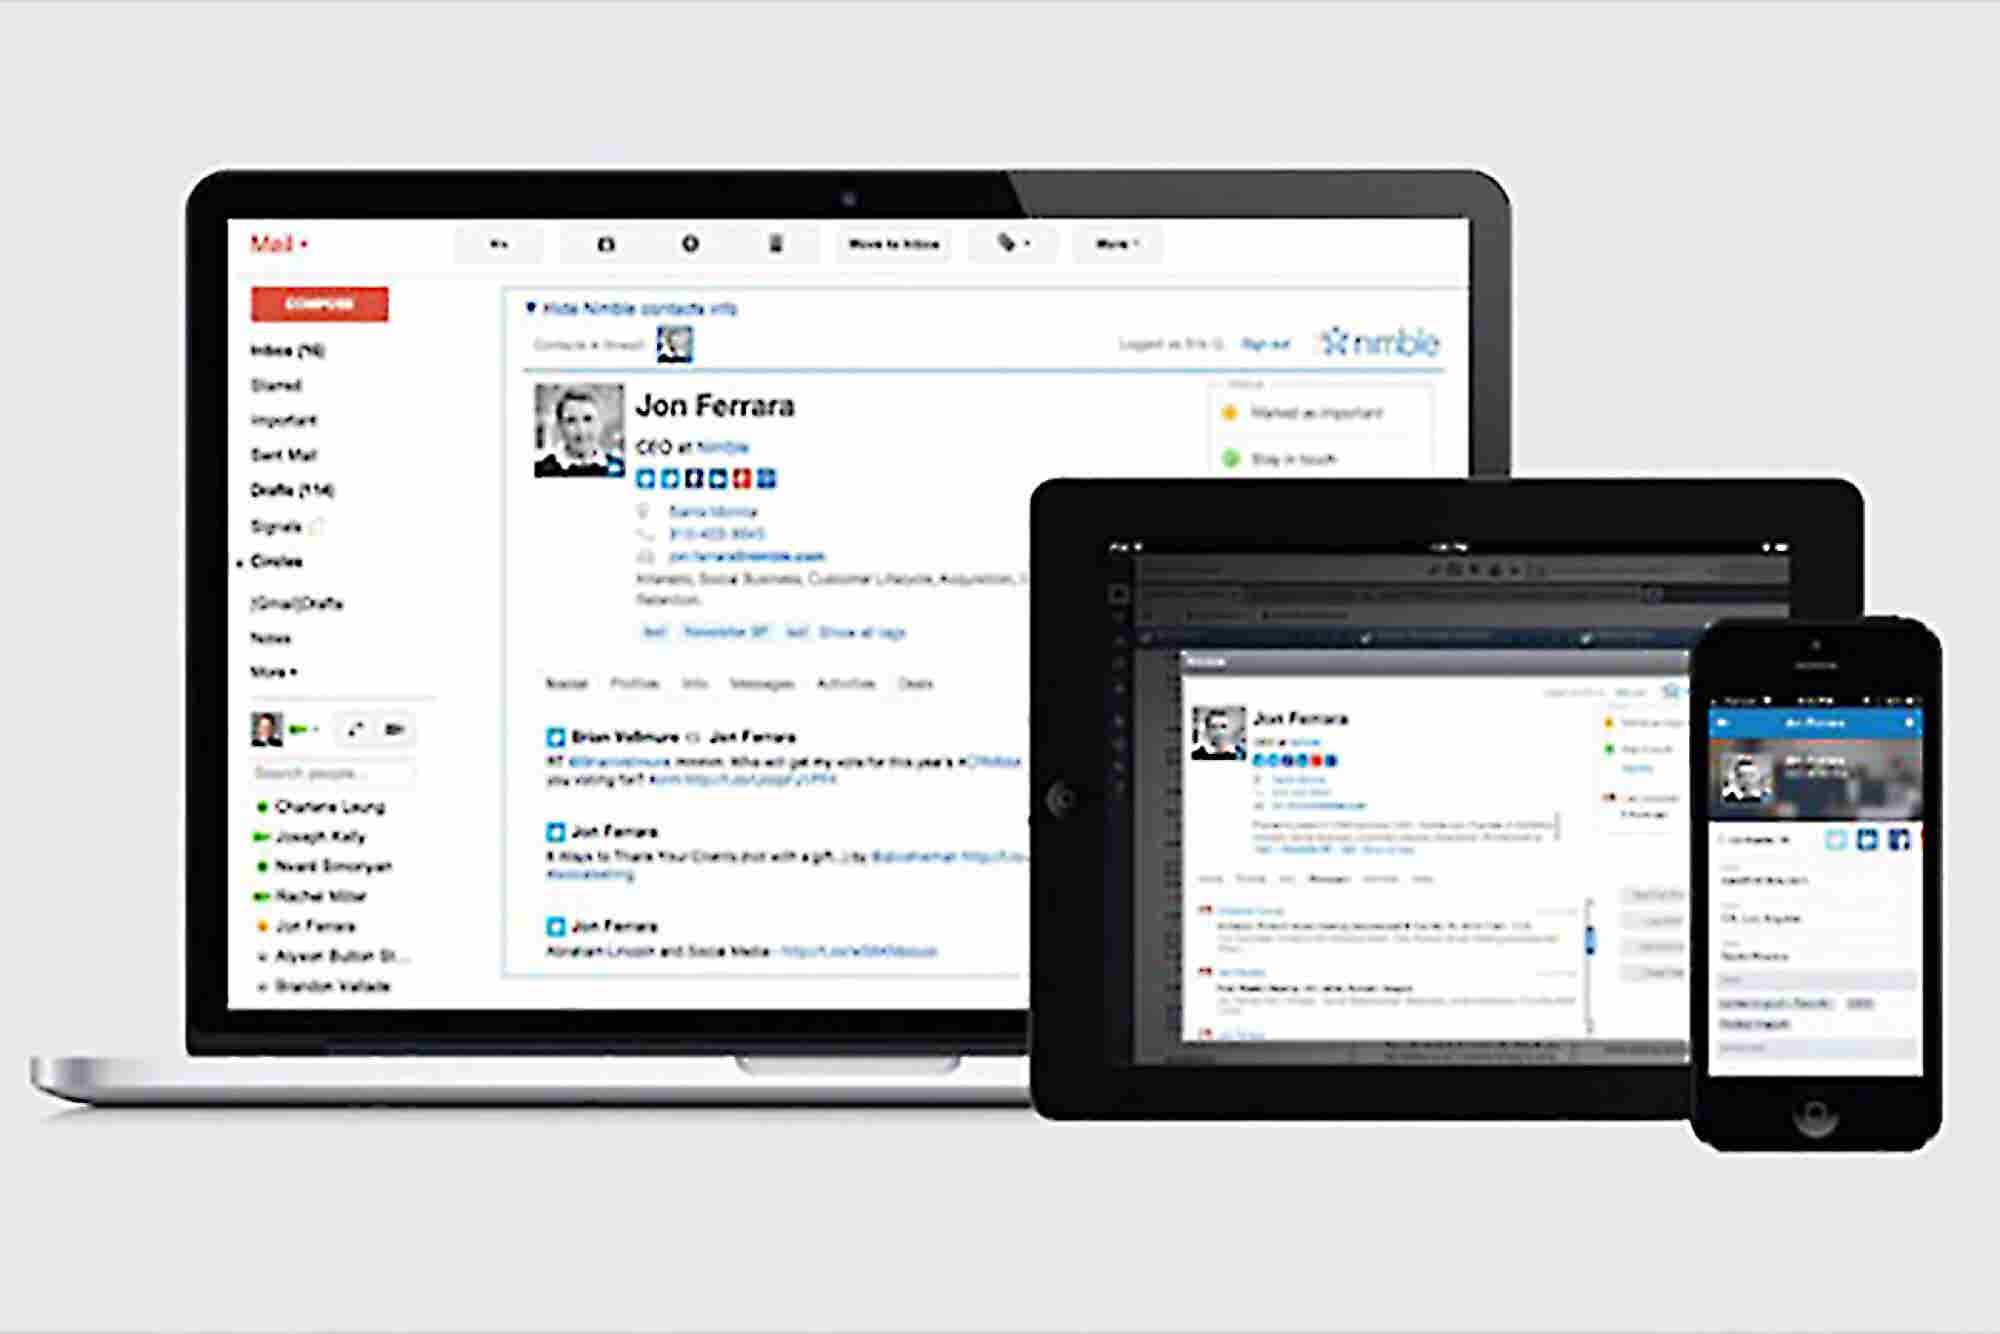 Overwhelmed by Email and Social Mentions? This Tool Tames Both.